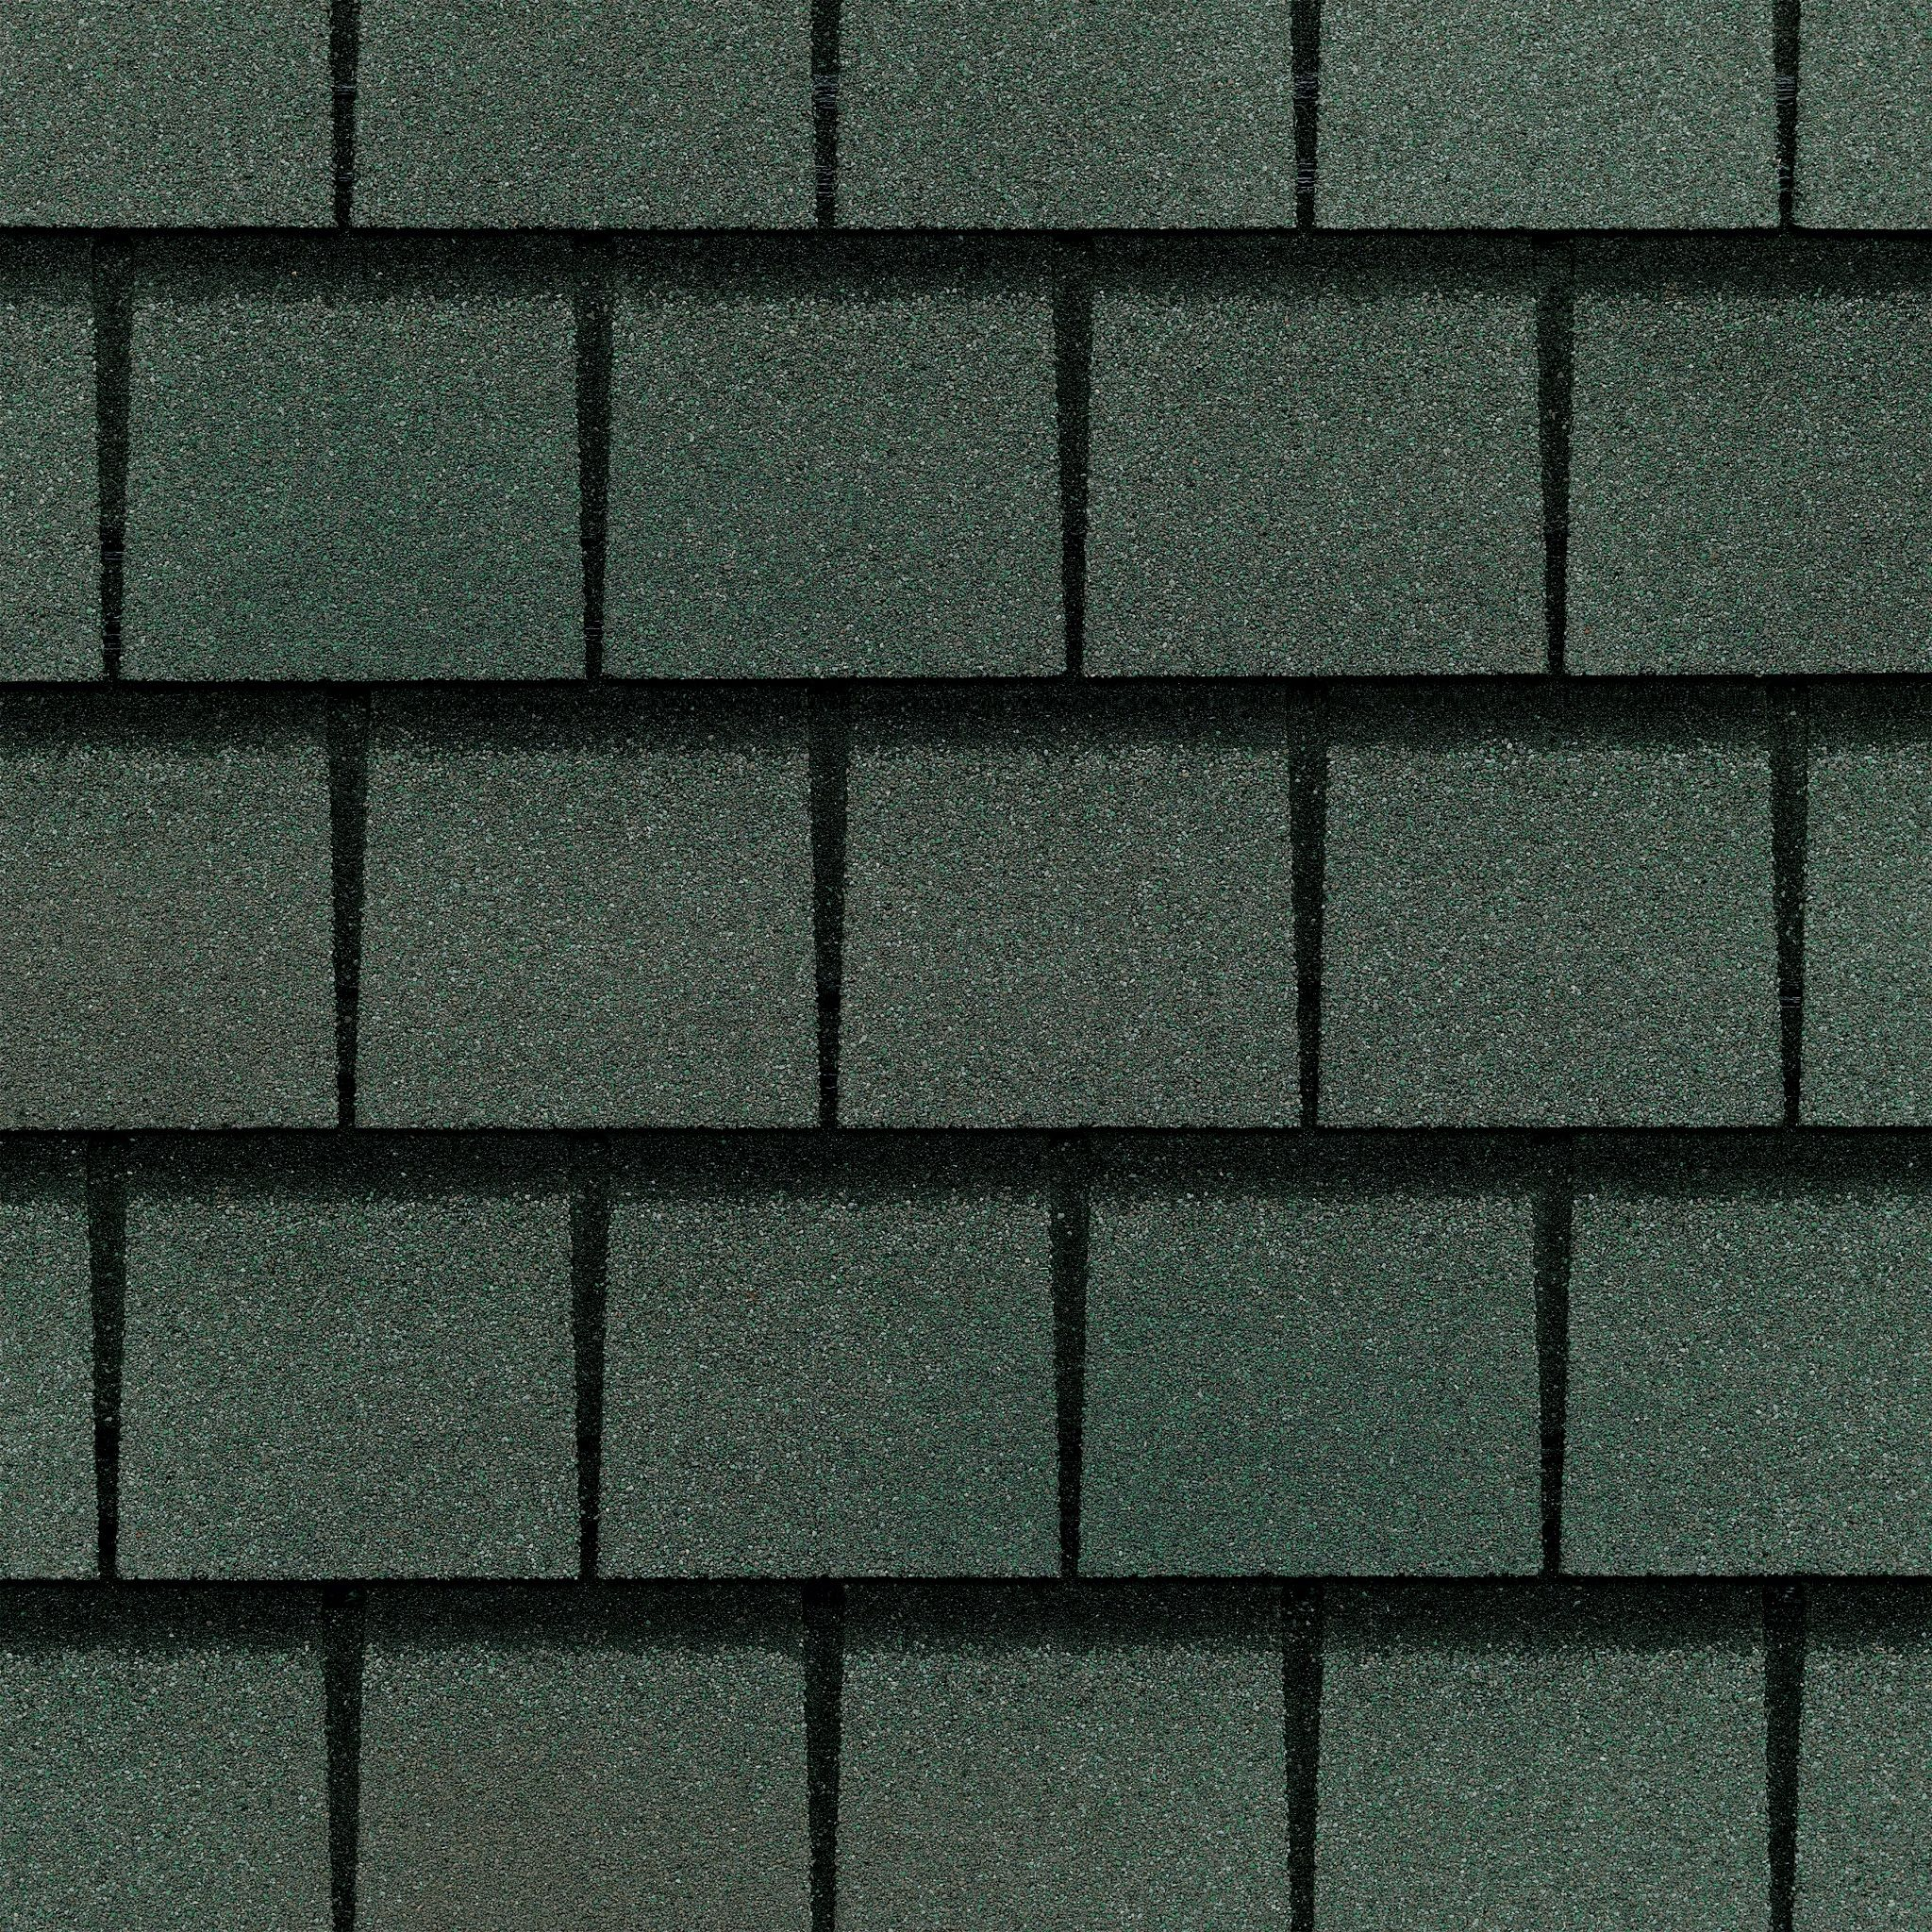 Best Slateline Roofing Shingles Architectural Shingles Roof 400 x 300